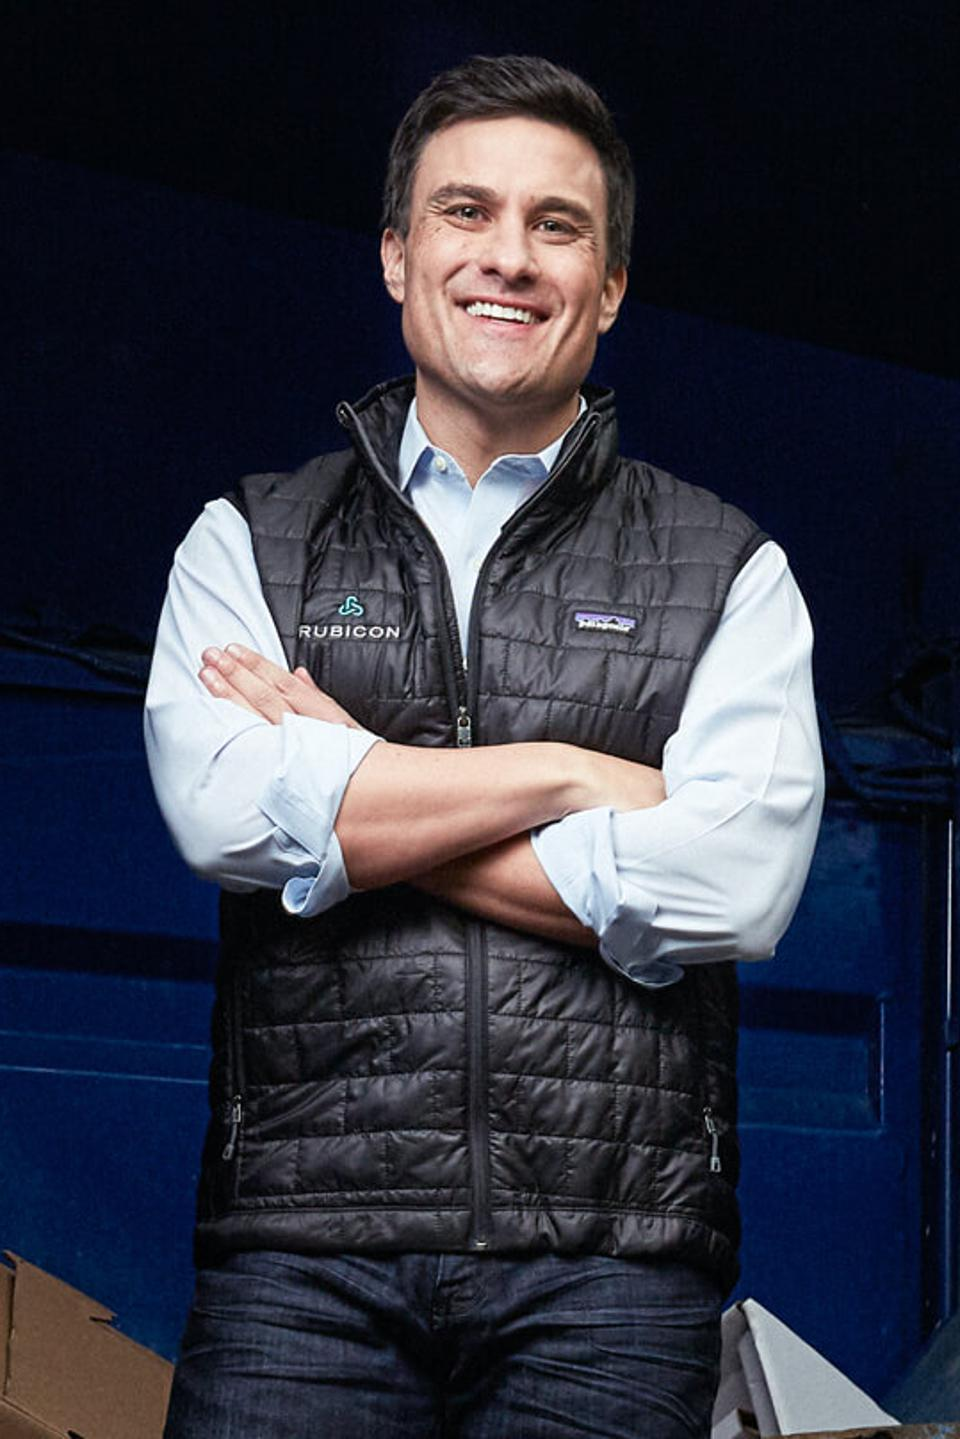 Nate Morris, Rubicon Chairman and CEO